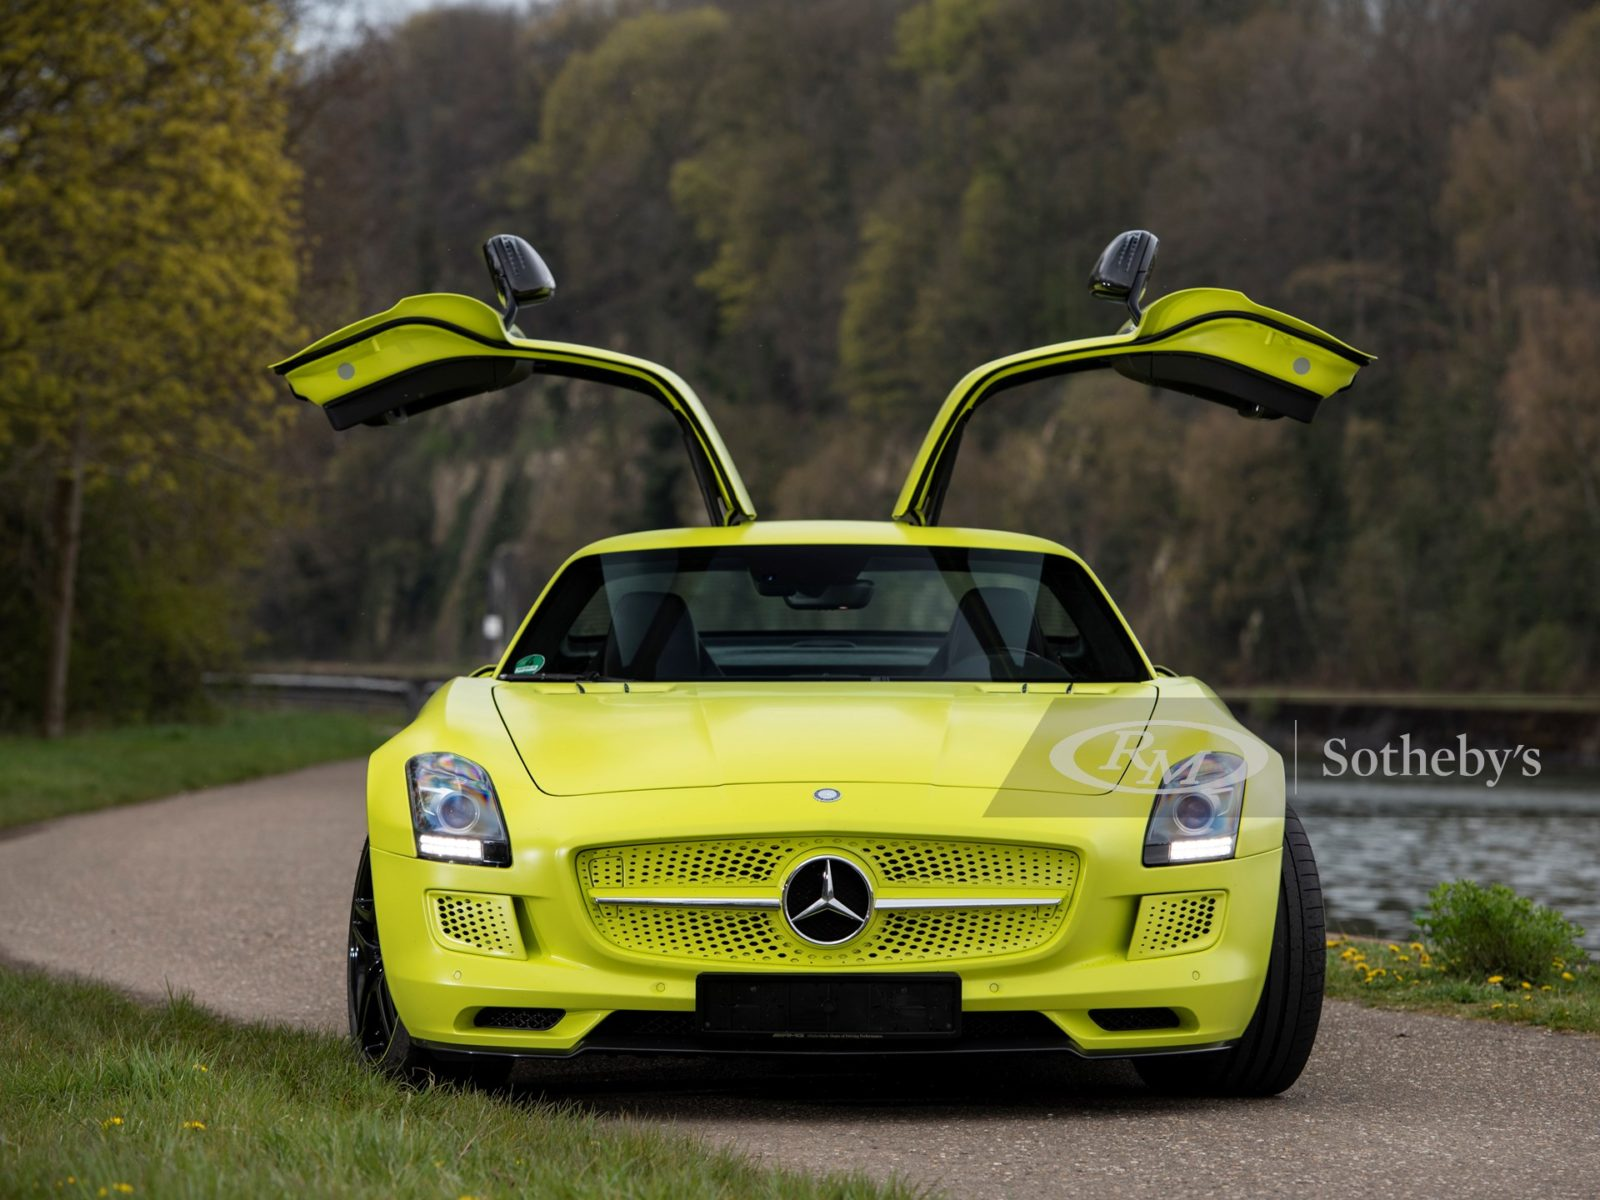 for-sale:-a-1-of-9-2013-sls-amg-electric-drive